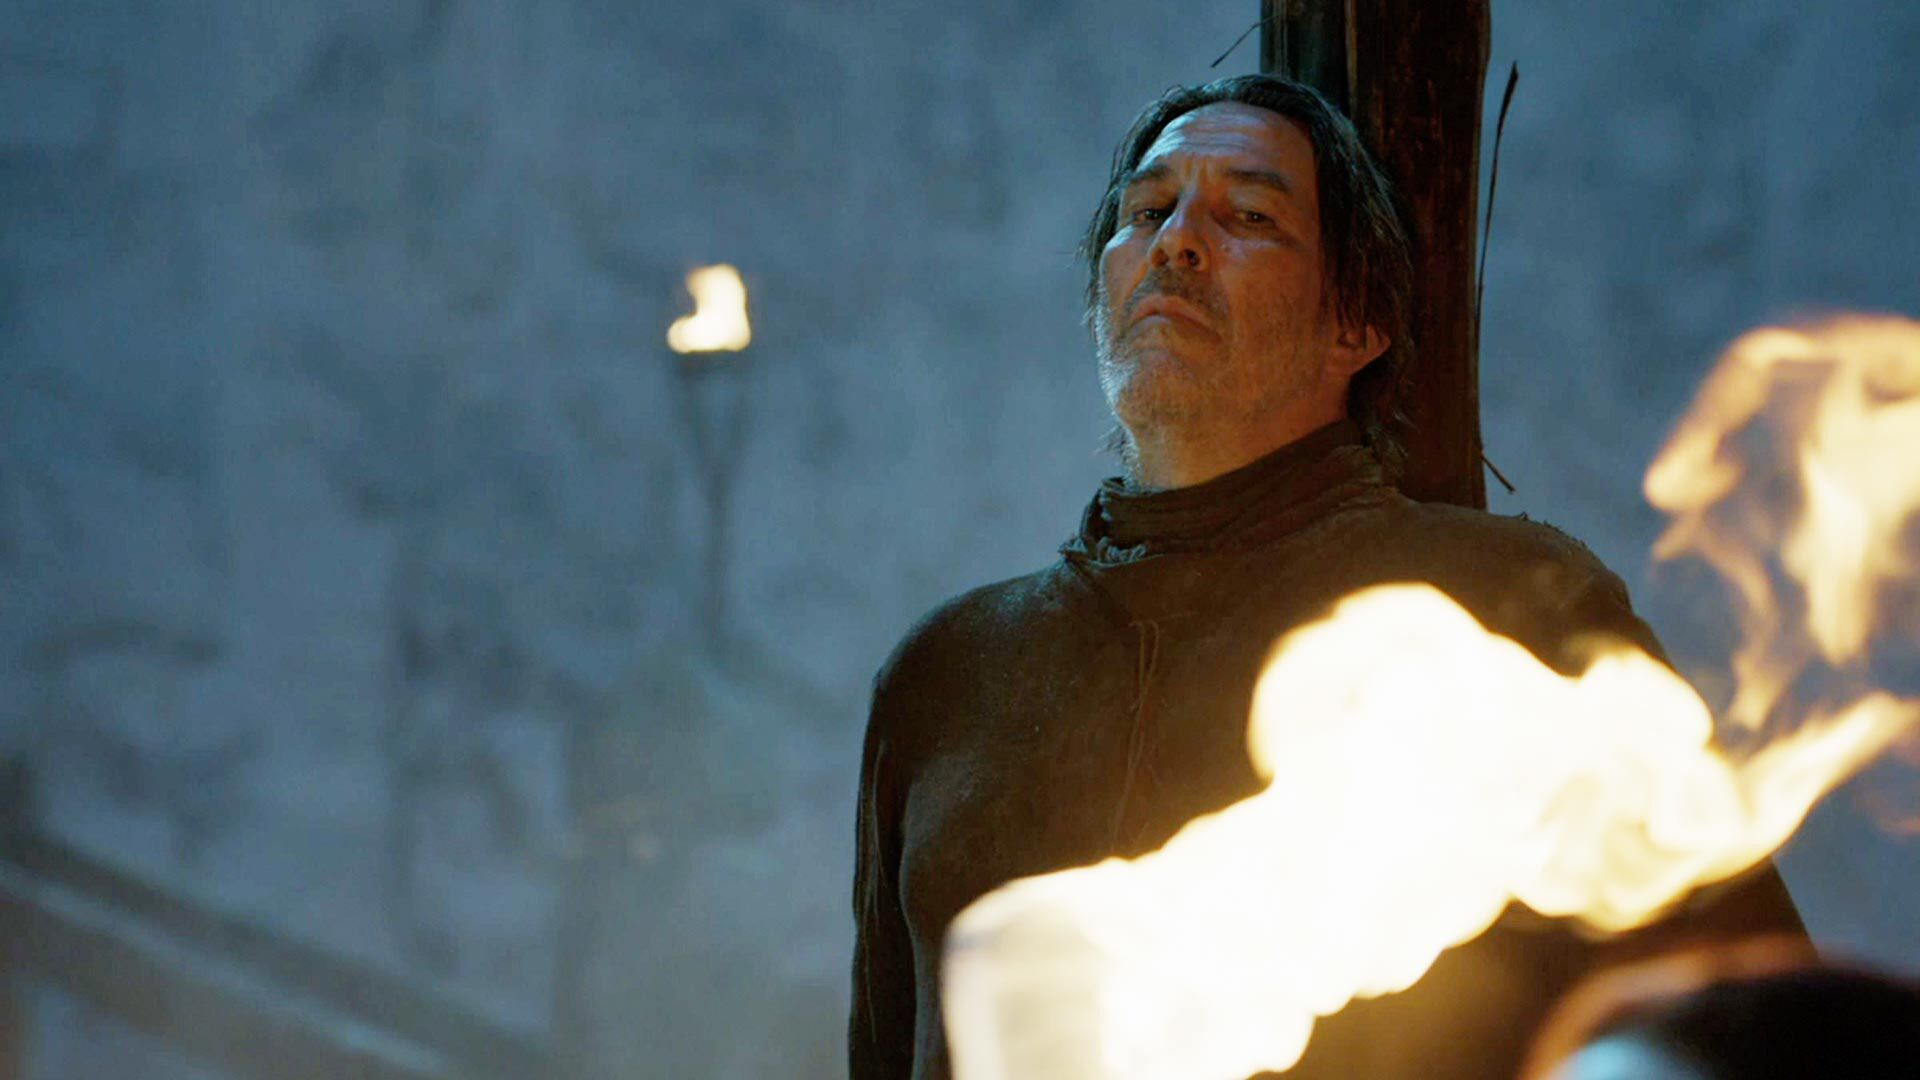 Mance Rayder's death on Game of Thrones was a smart change for TV